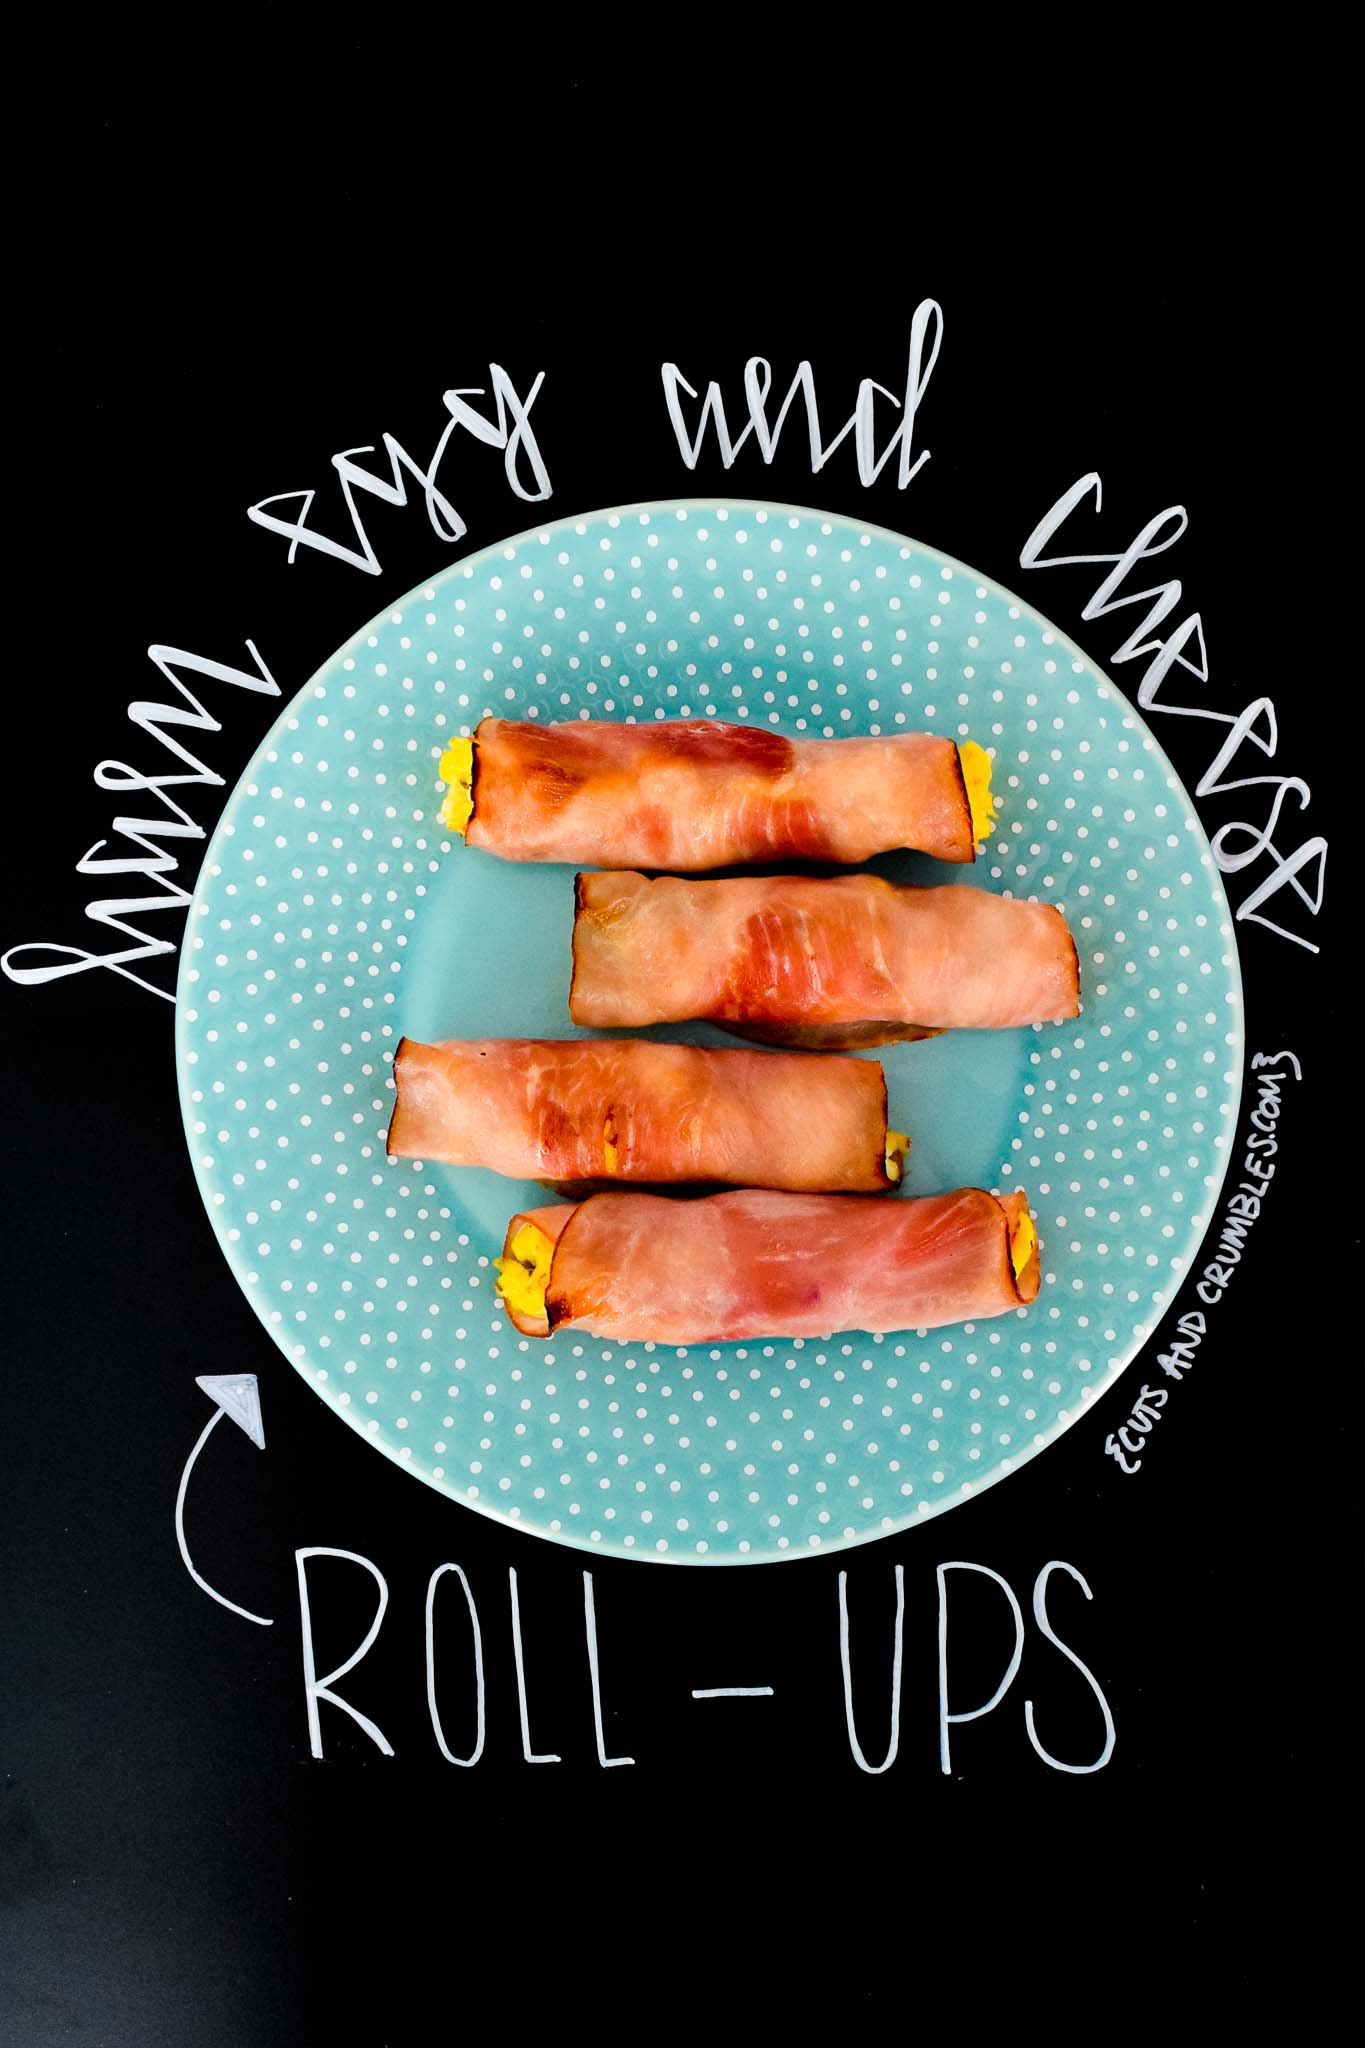 Ham Egg and Cheese Roll-Ups on blue plate with title written on chalkboard